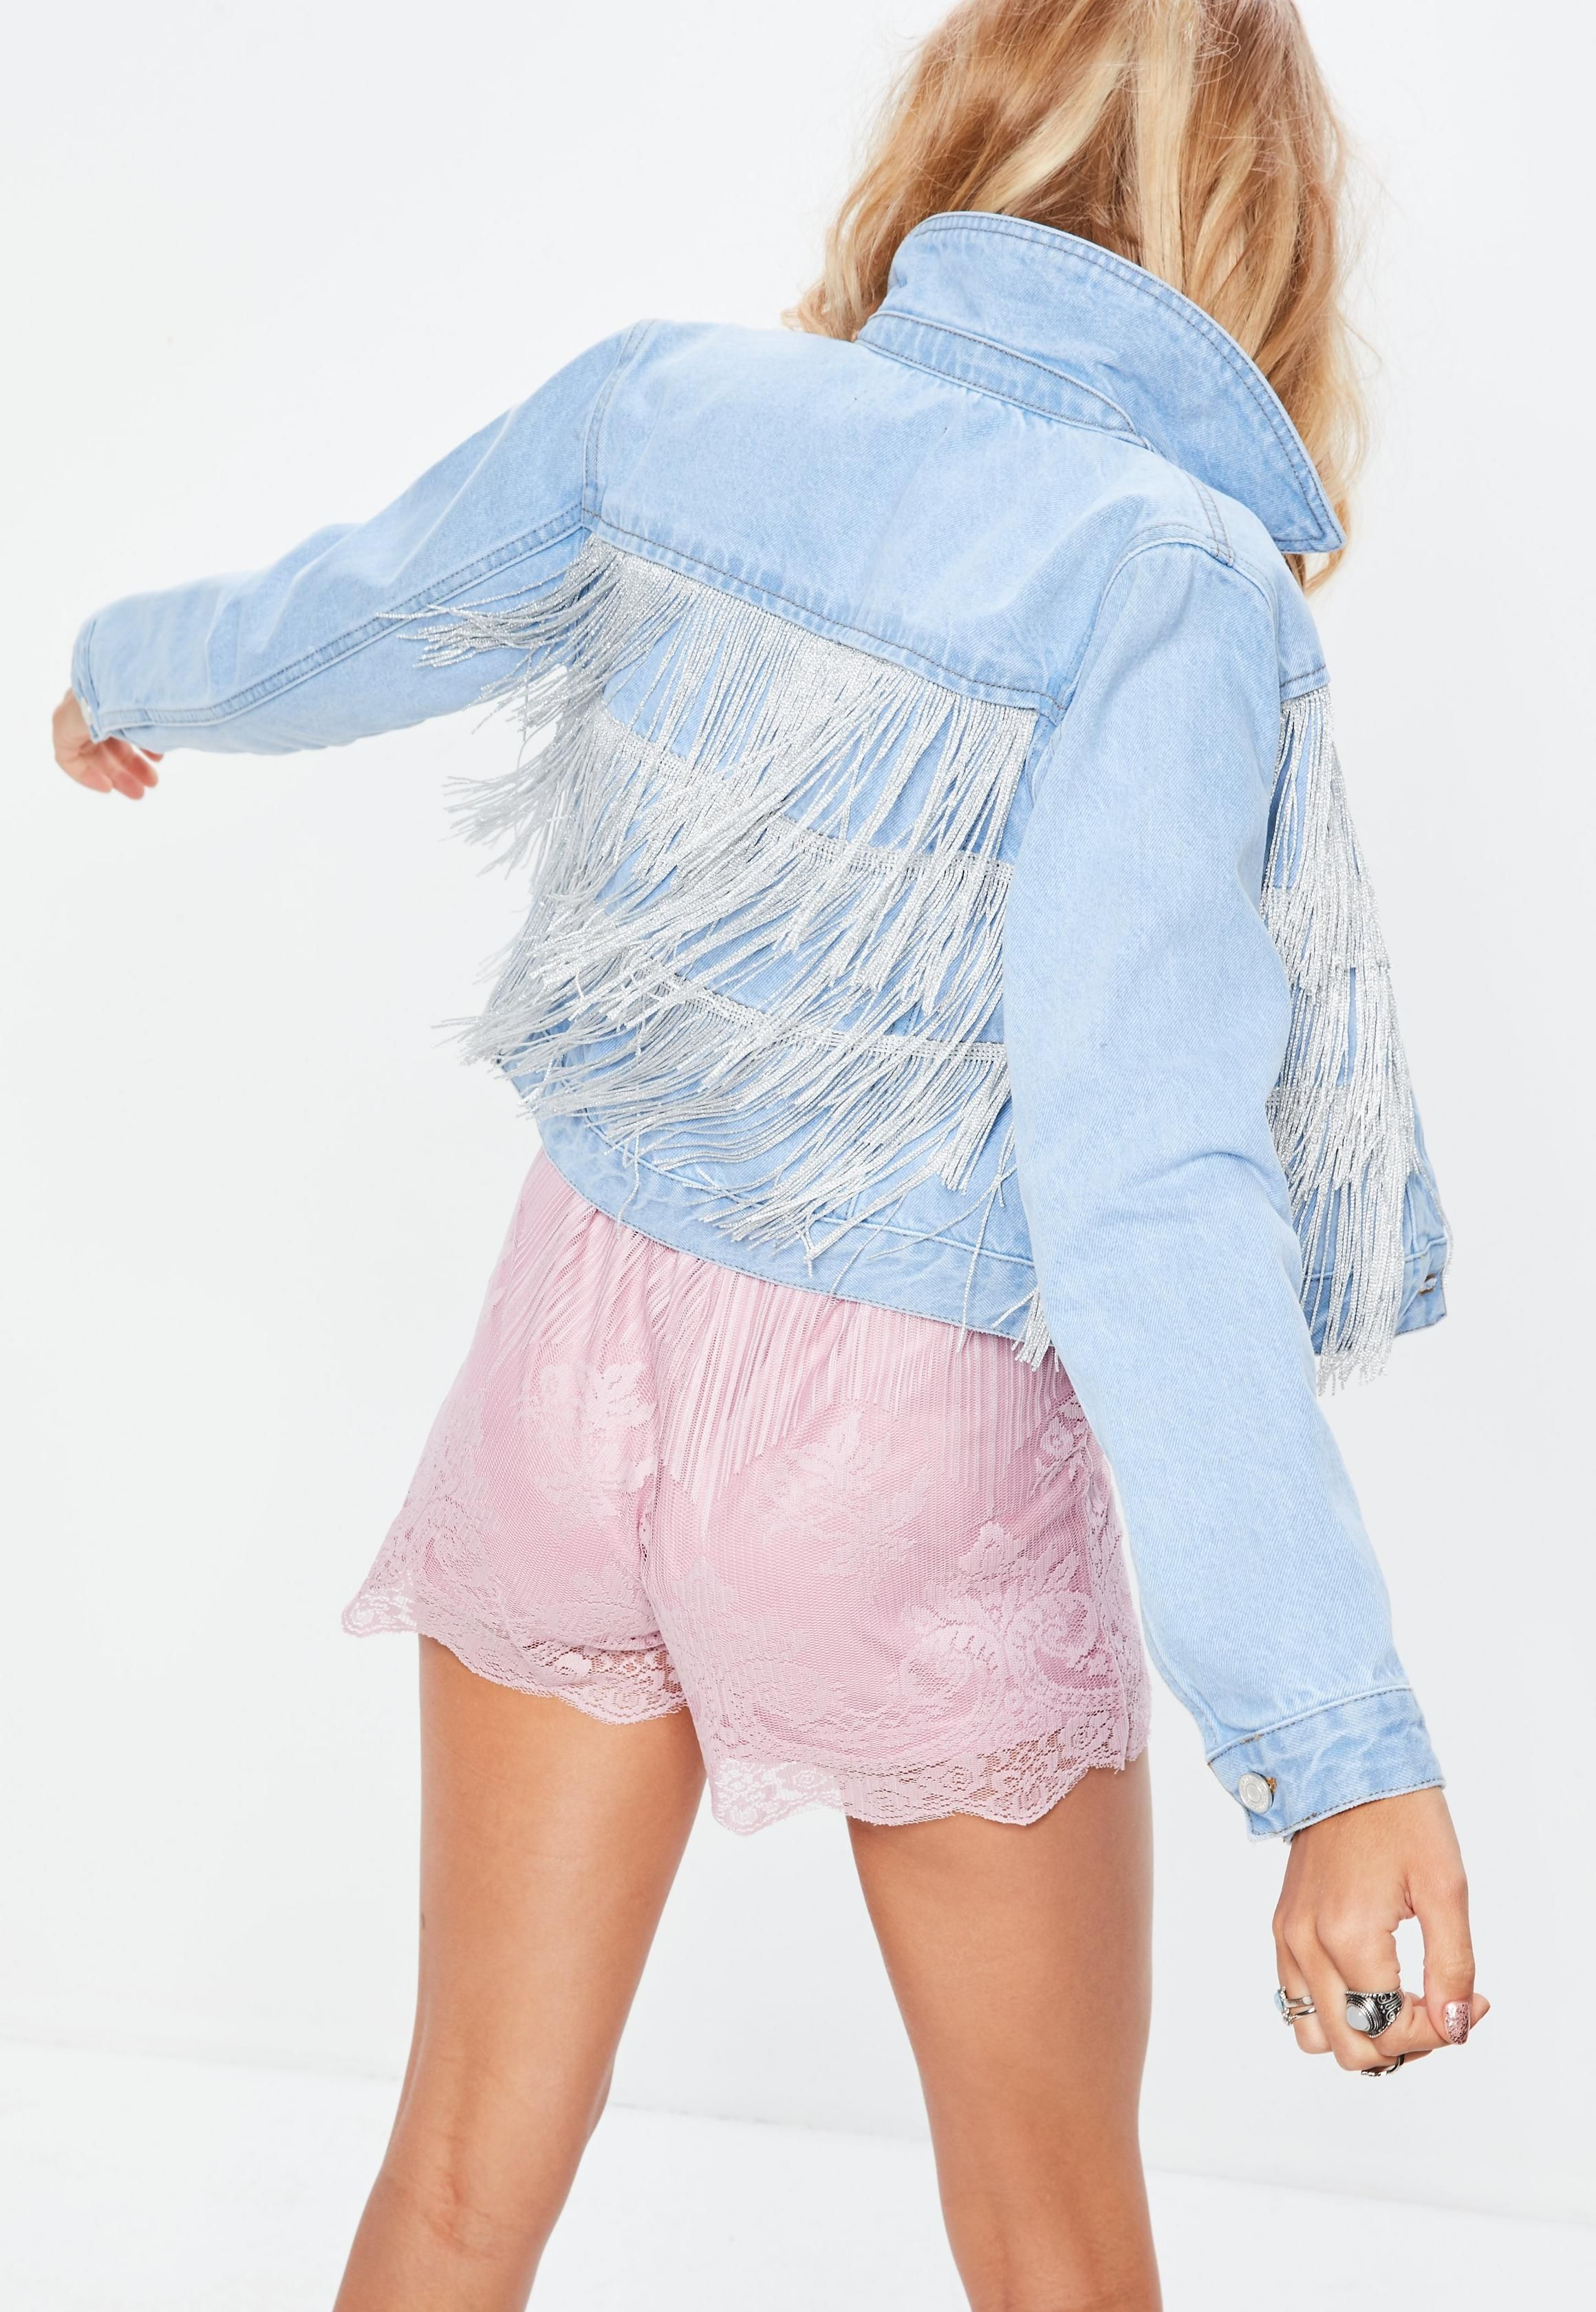 To acquire Jackets cropped for spring-summer pictures trends